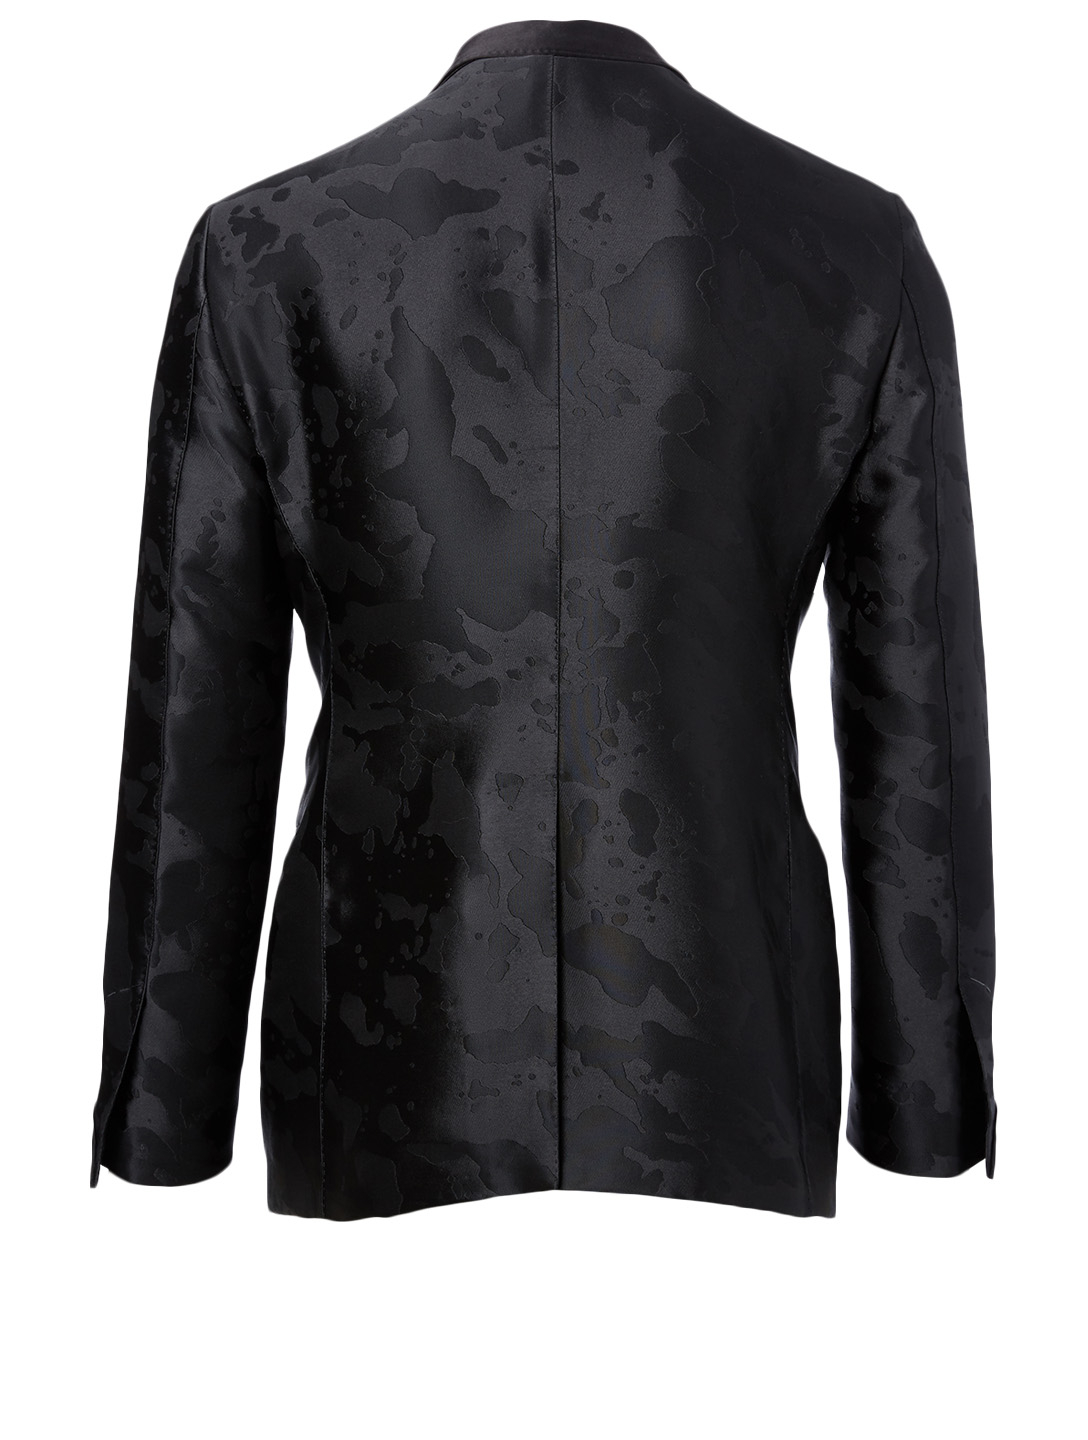 TOM FORD Silk Down Jacket Men's Black